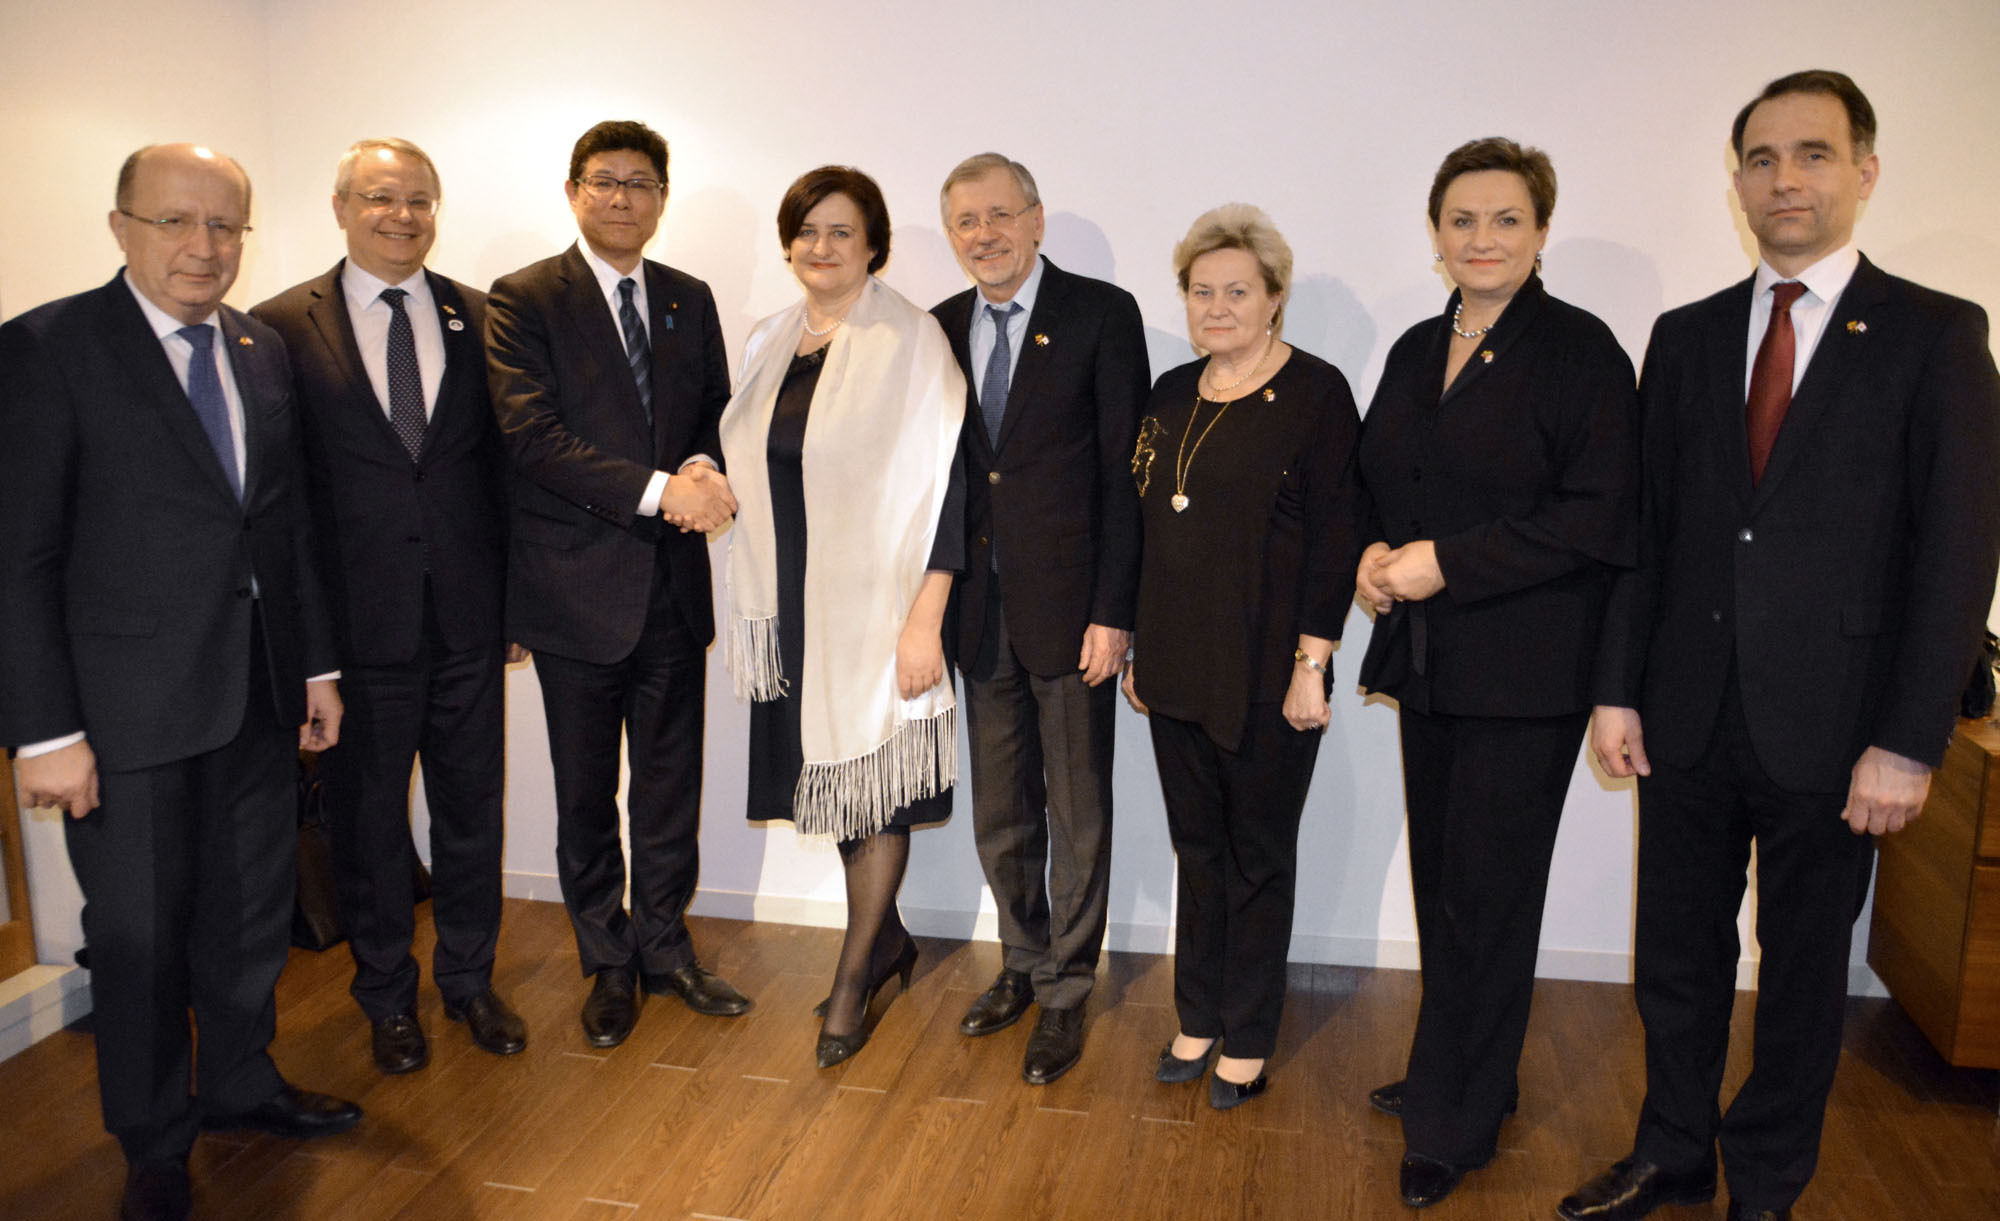 Reconstruction minister Tsuyoshi Takagi (third from left) shakes hands with the Speaker of the Lithuanian parliament Loreta Grauziniene at a reception in her honor at the Lithuanian Embassy on March 2. They were joined by (from left) Andrius Kubilius, former Lithuanian prime minister; Egidijus Meilunas, ambassador of Lithuania; Gediminas Kirkilas, former Lithuanian prime minister; Lithuanian parliament members Irena Siauliene and Dangute Mikutiene; and Minister of Energy Rokas Masiulis. | LITHUANIAN EMBASSY